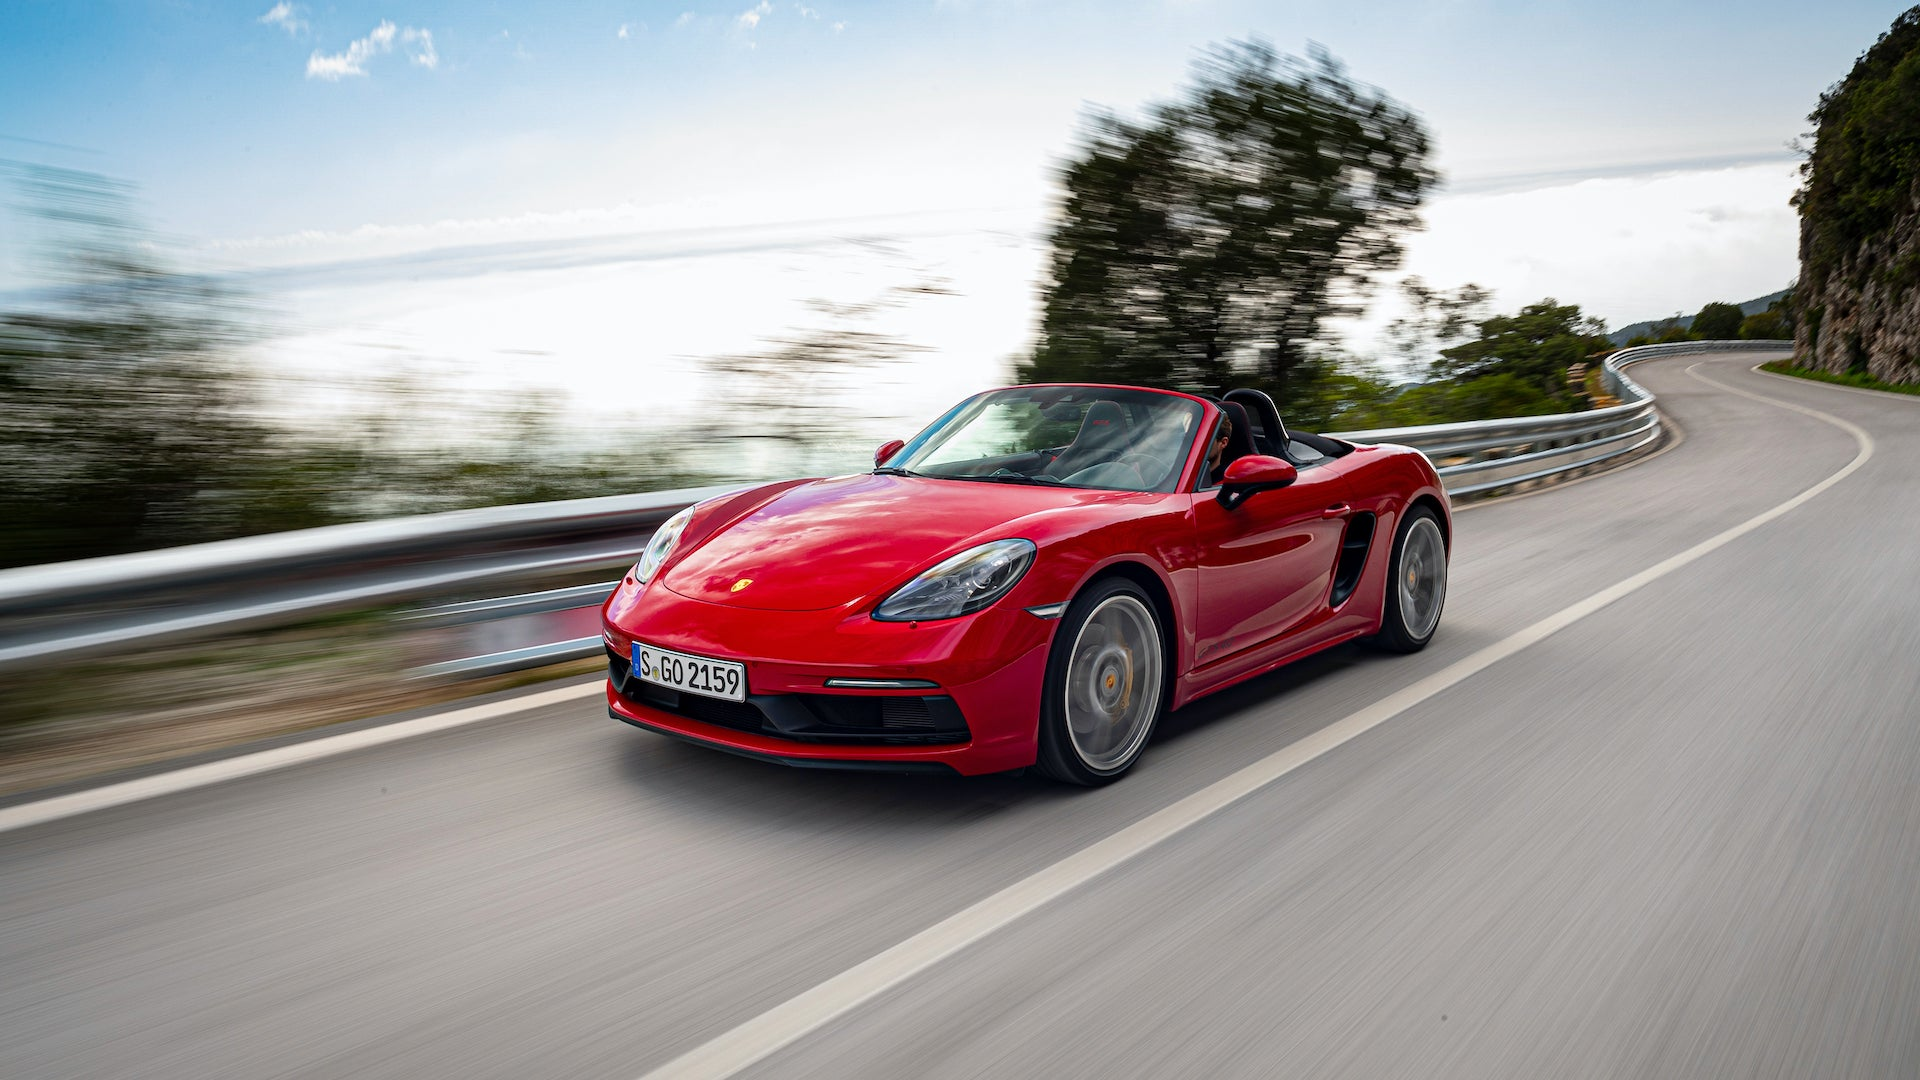 2021 Porsche 718 Cayman And Boxster Gts A Welcome Return To Flat Six Glory